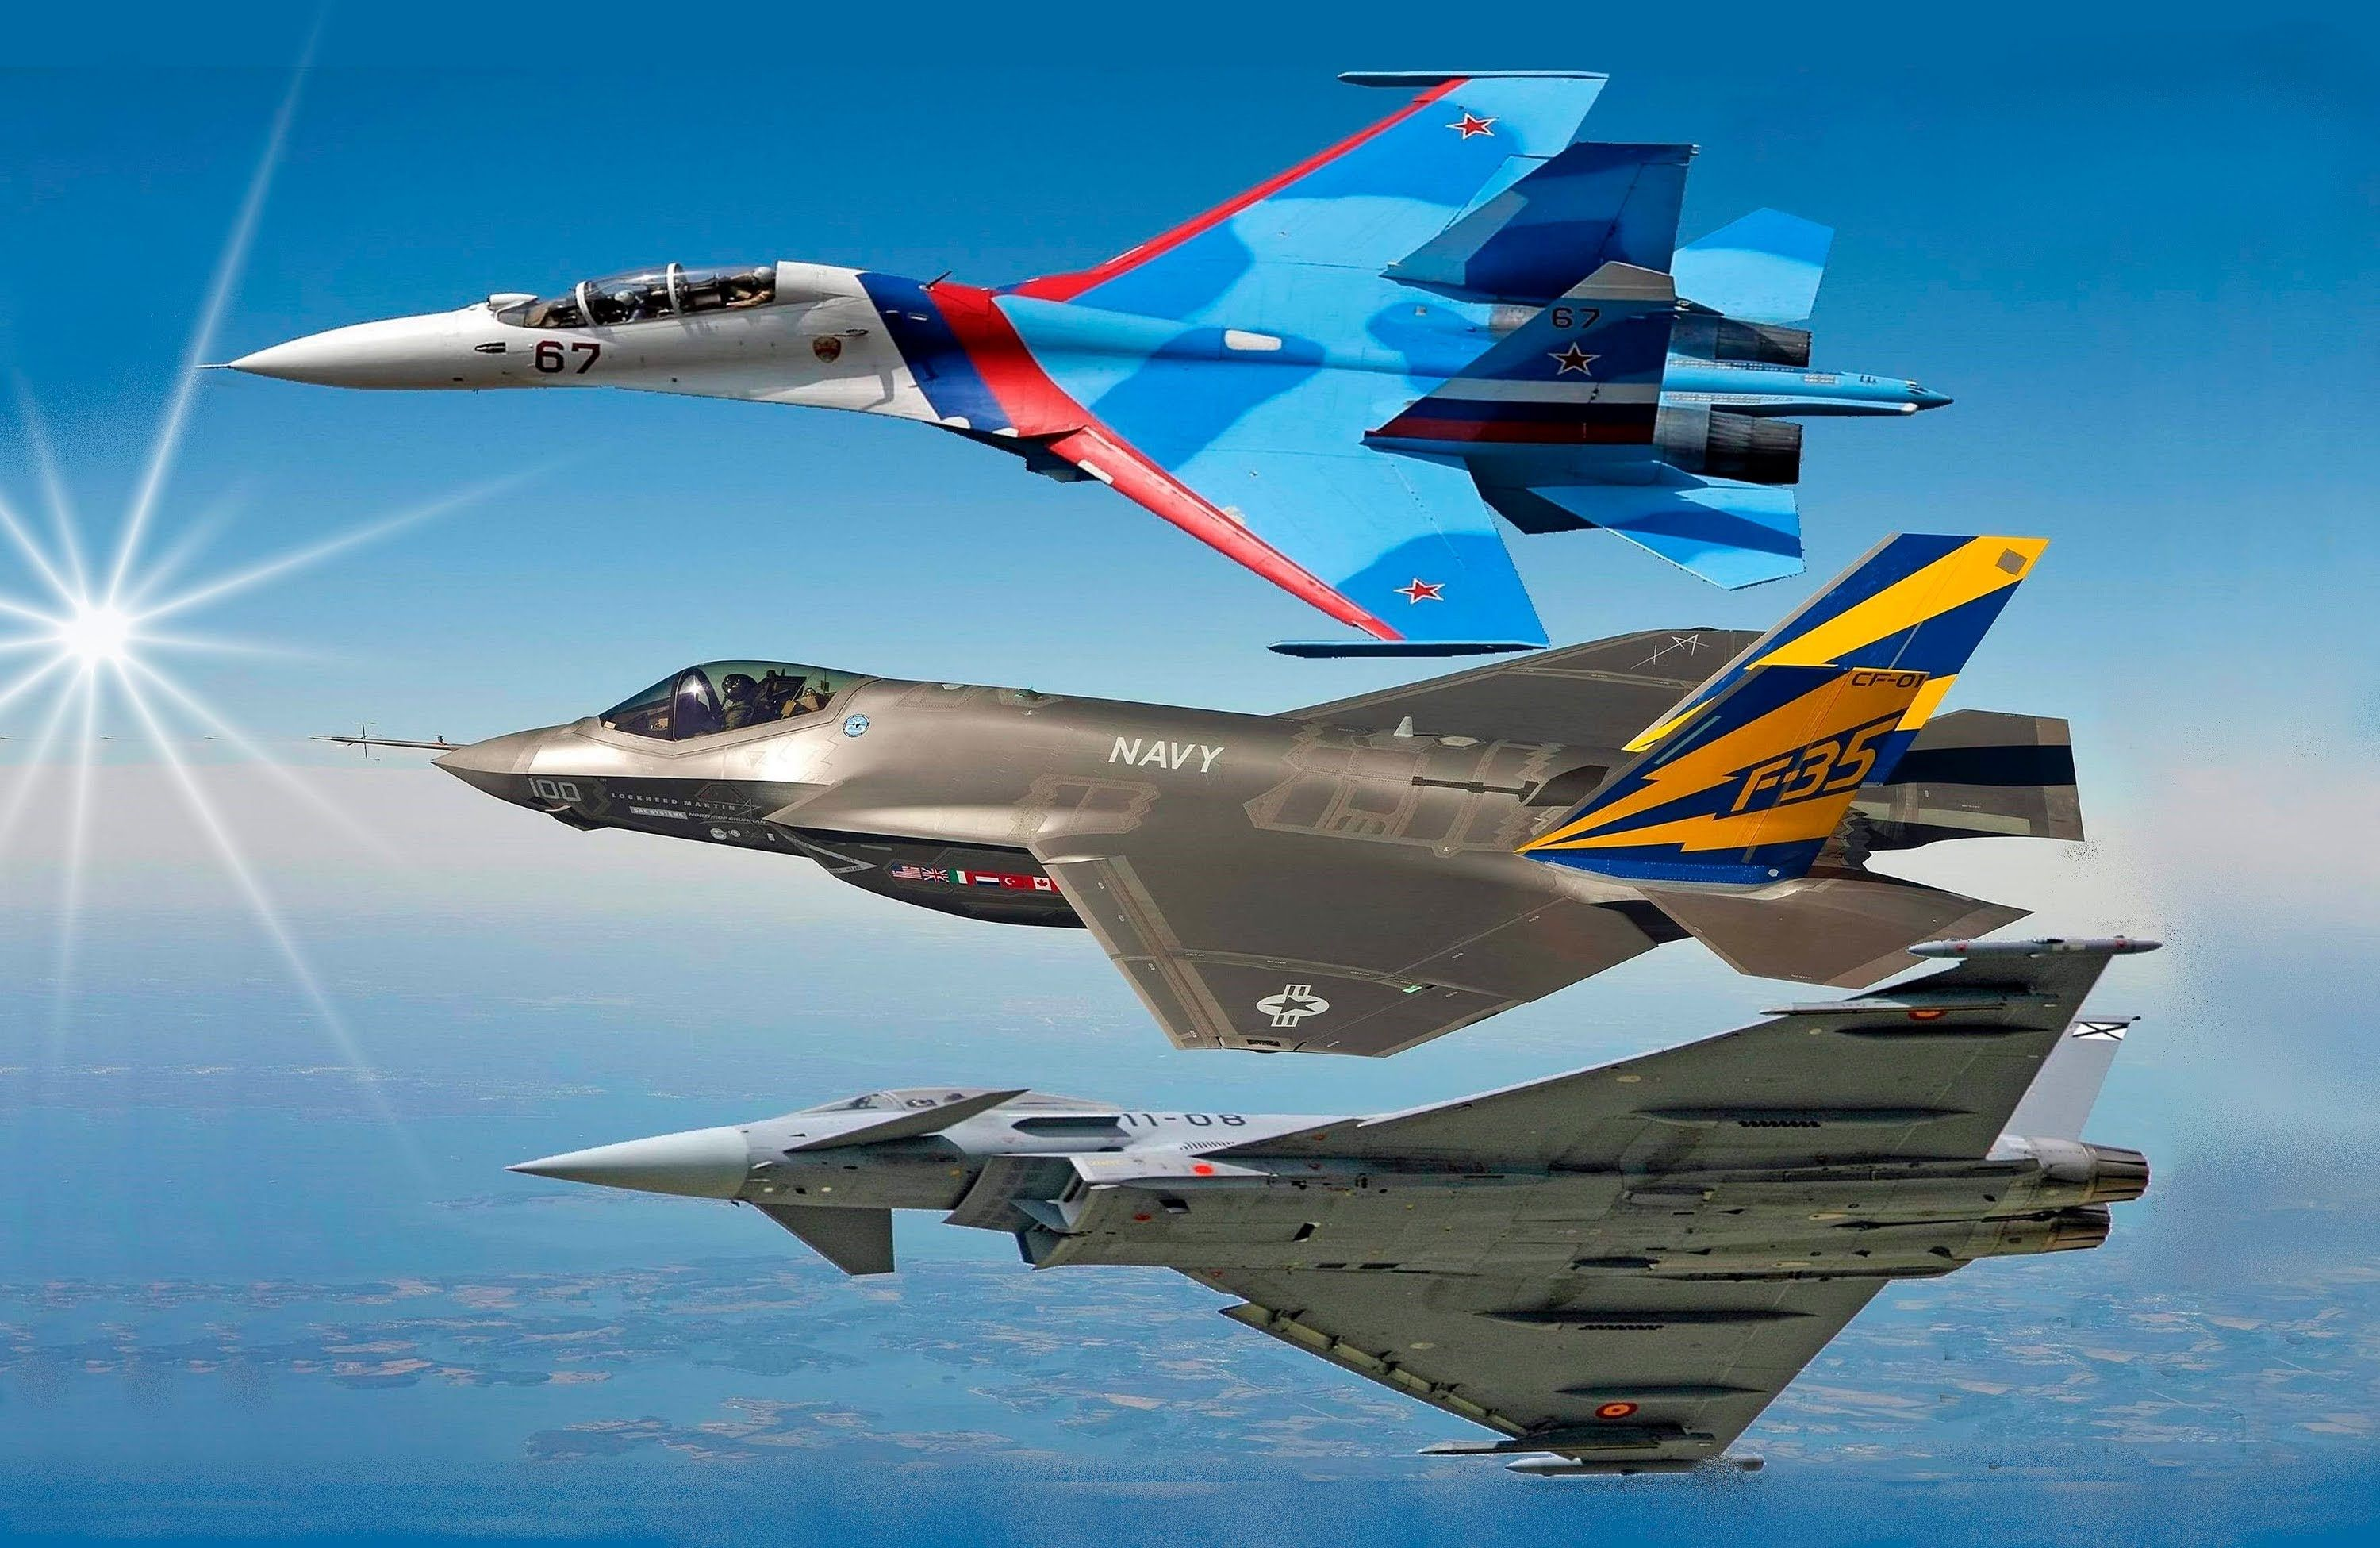 Best Fighter Jet In The World 2020 Top 10 Fighter Jets in the world 2016   2020   Aircraft   Fighter